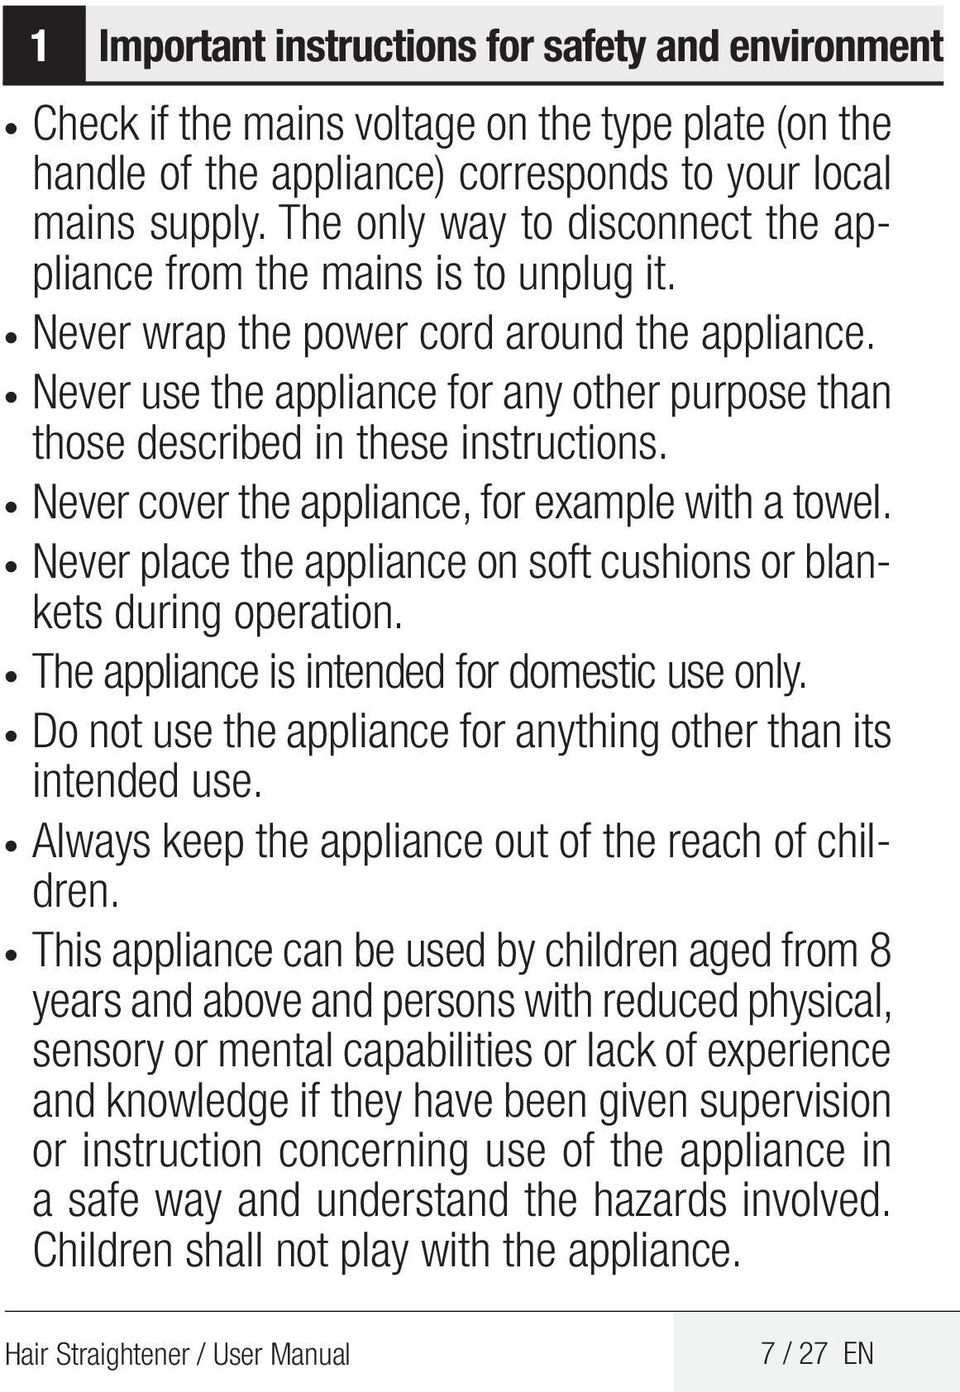 Never use the appliance for any other purpose than those described in these instructions. Never cover the appliance, for example with a towel.